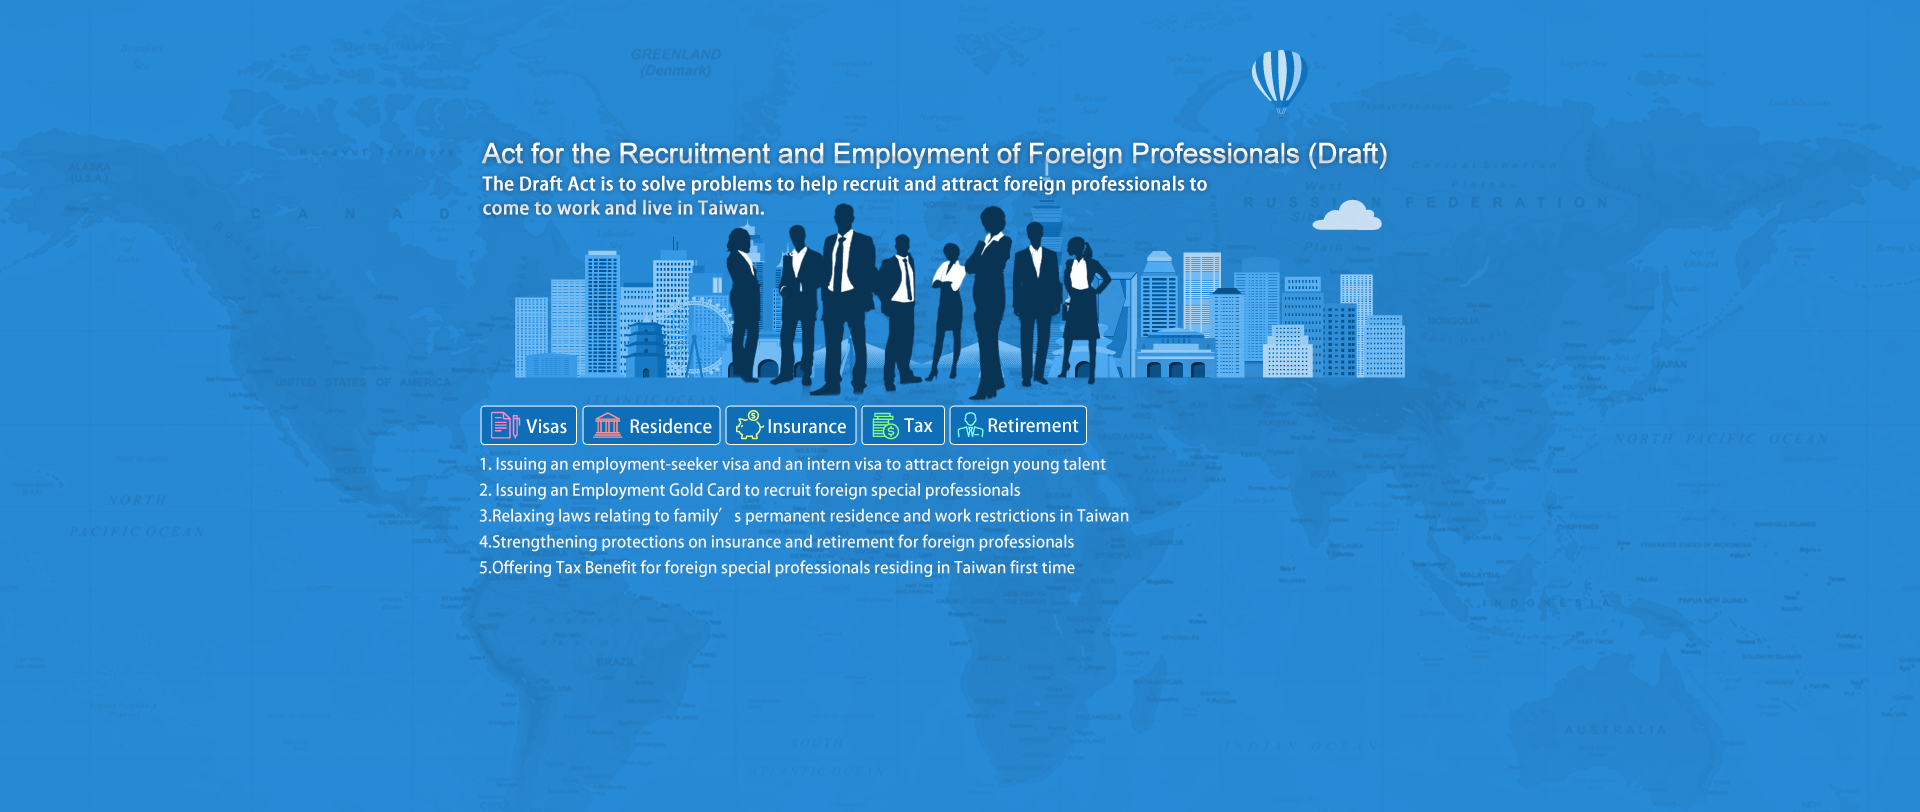 General Explanation of the Draft Act for the Recruitment and Employment of Foreign Professionals